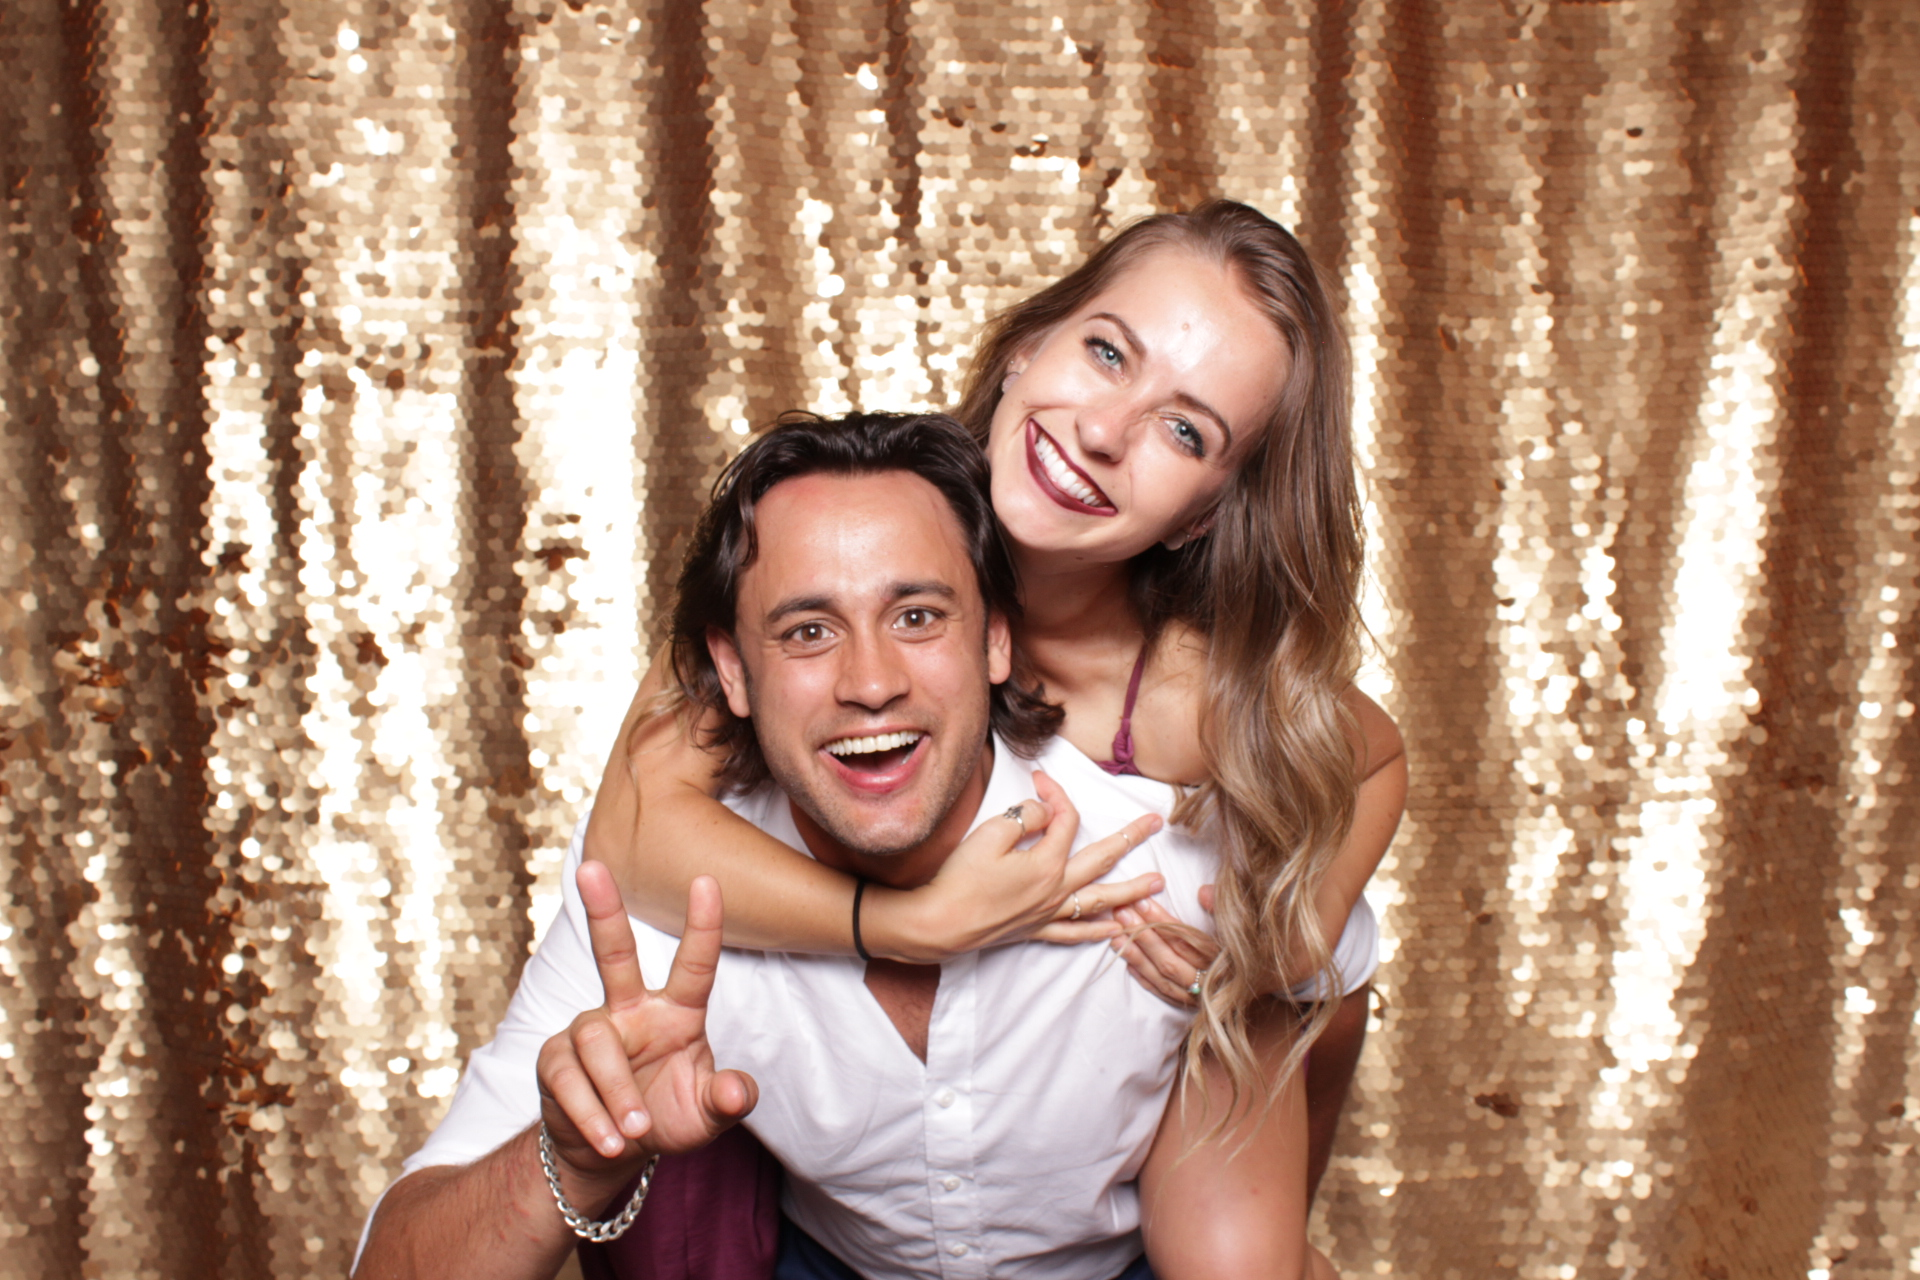 Minneapolis_St Paul_Photo_Booths_Weddings (12).jpg